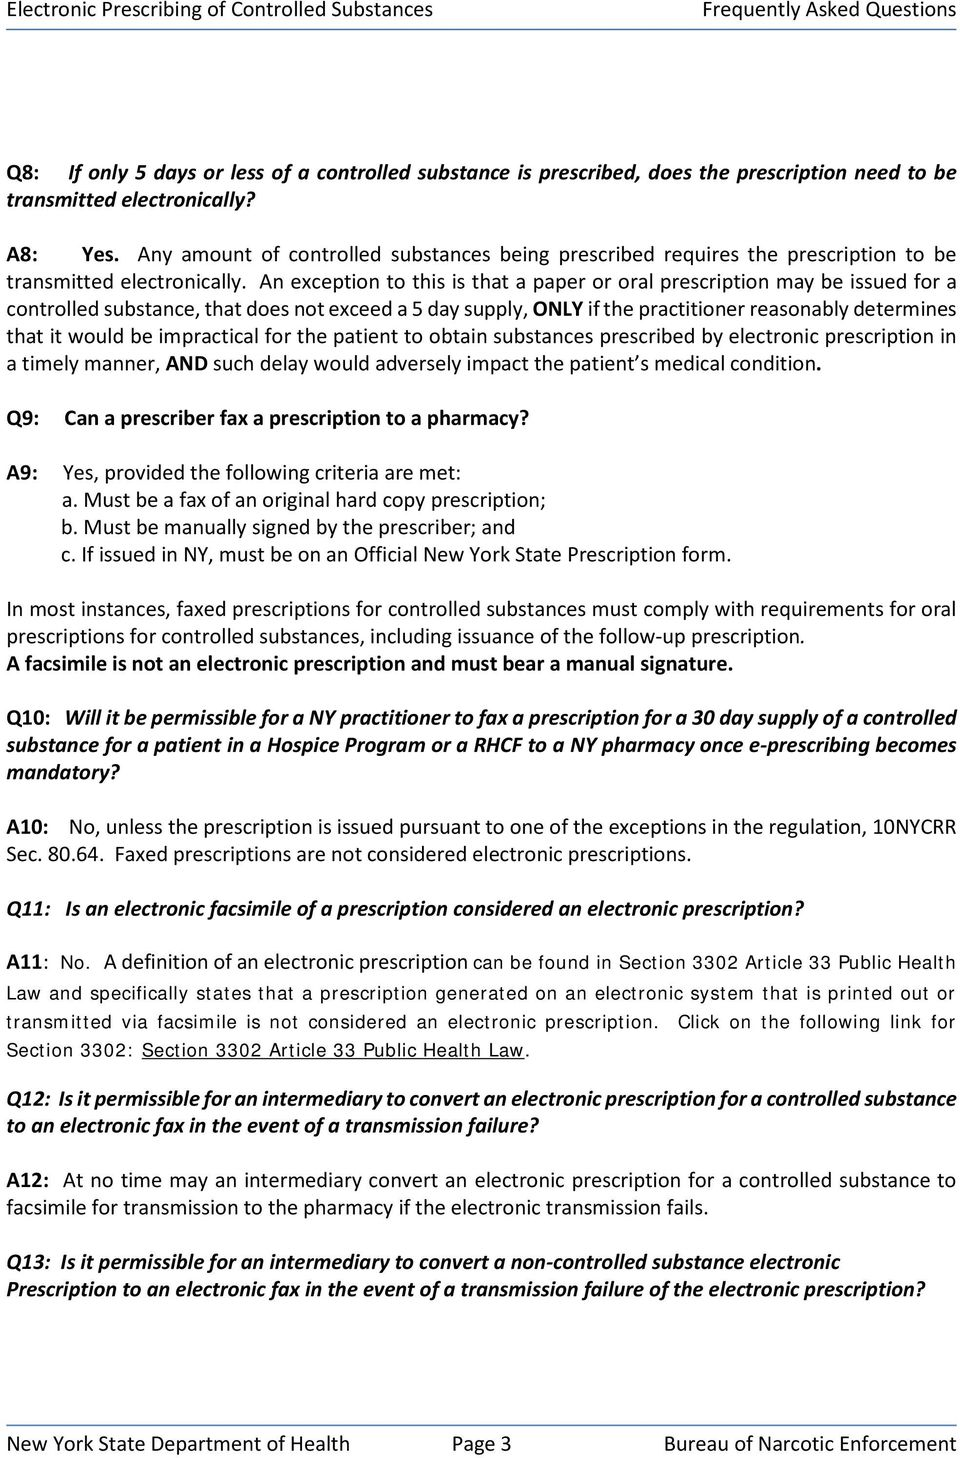 epcs frequently asked questions for electronic prescribing of